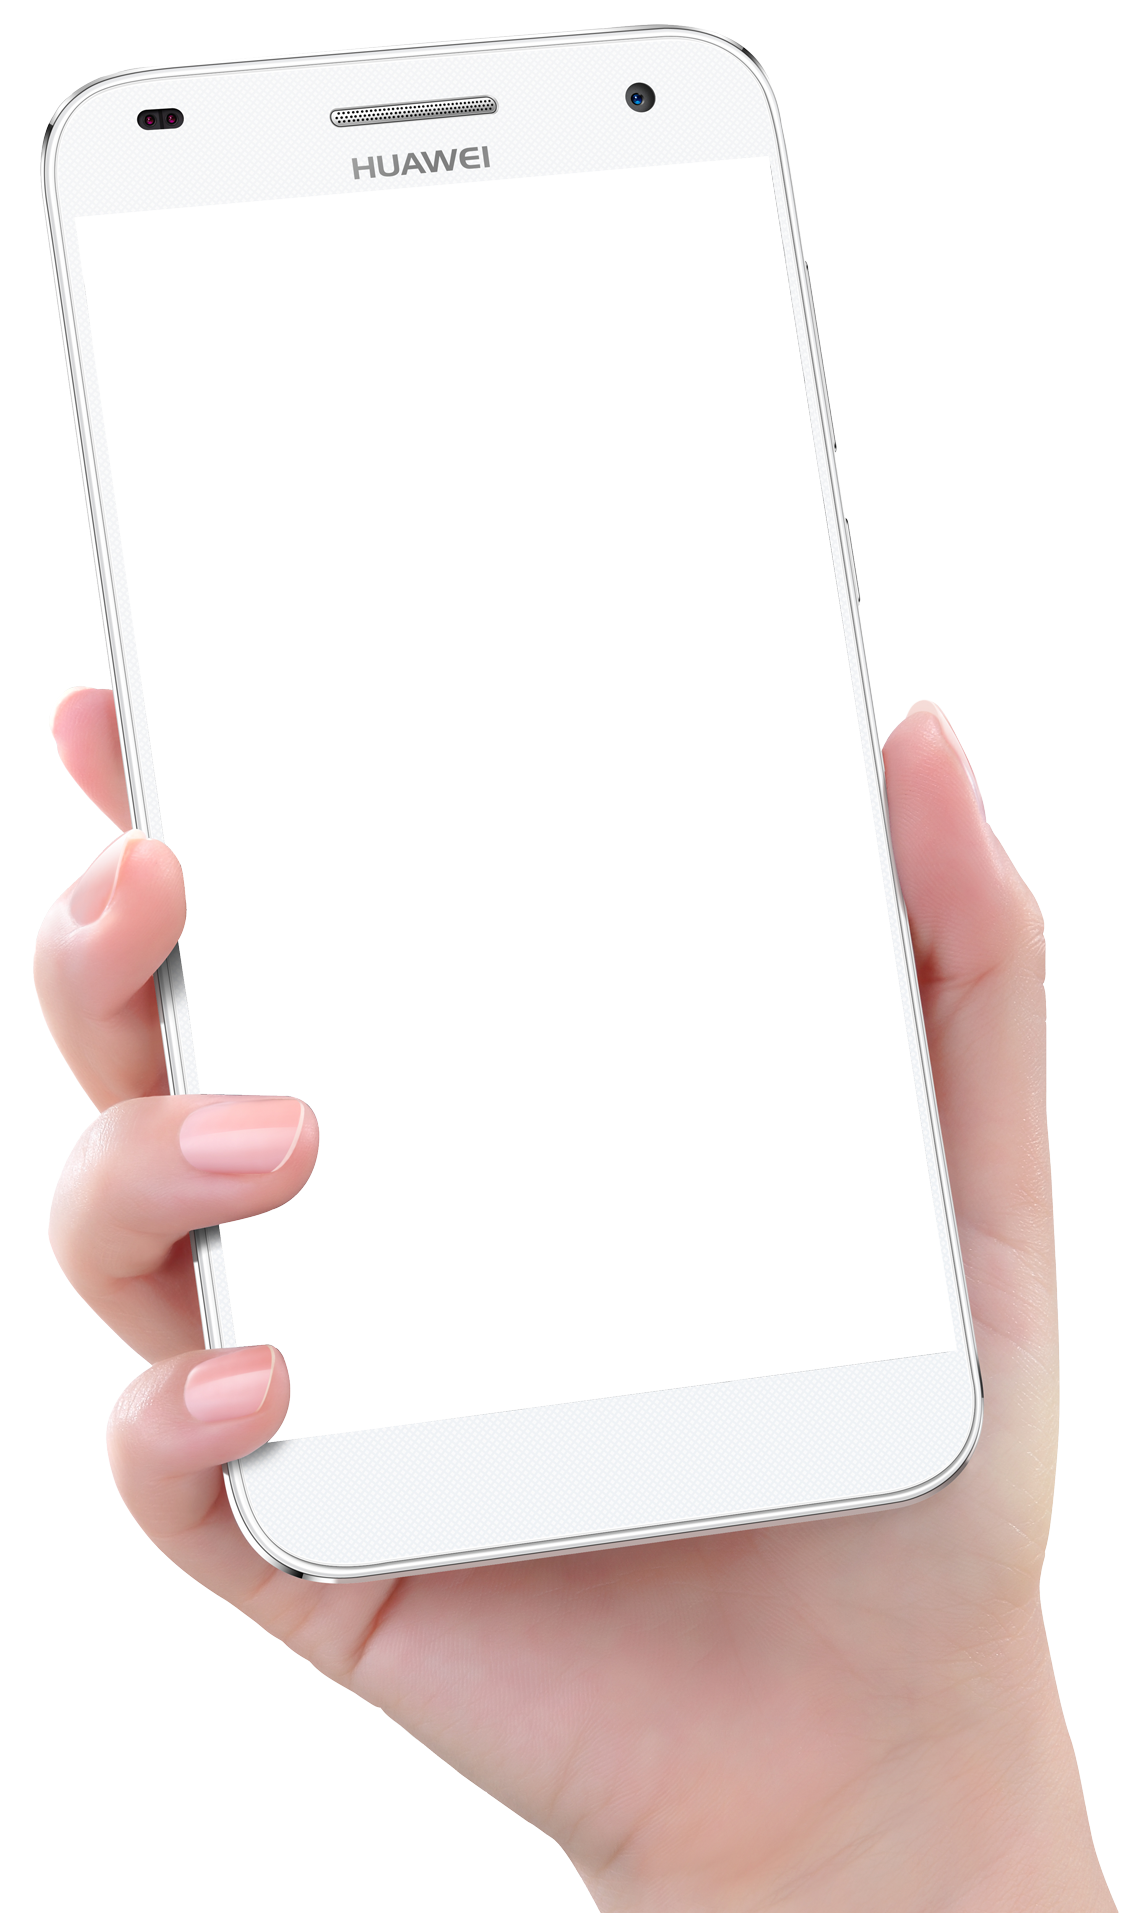 Hand Holding Smartphone Png Image Smartphone Smartphone Gadget Huawei